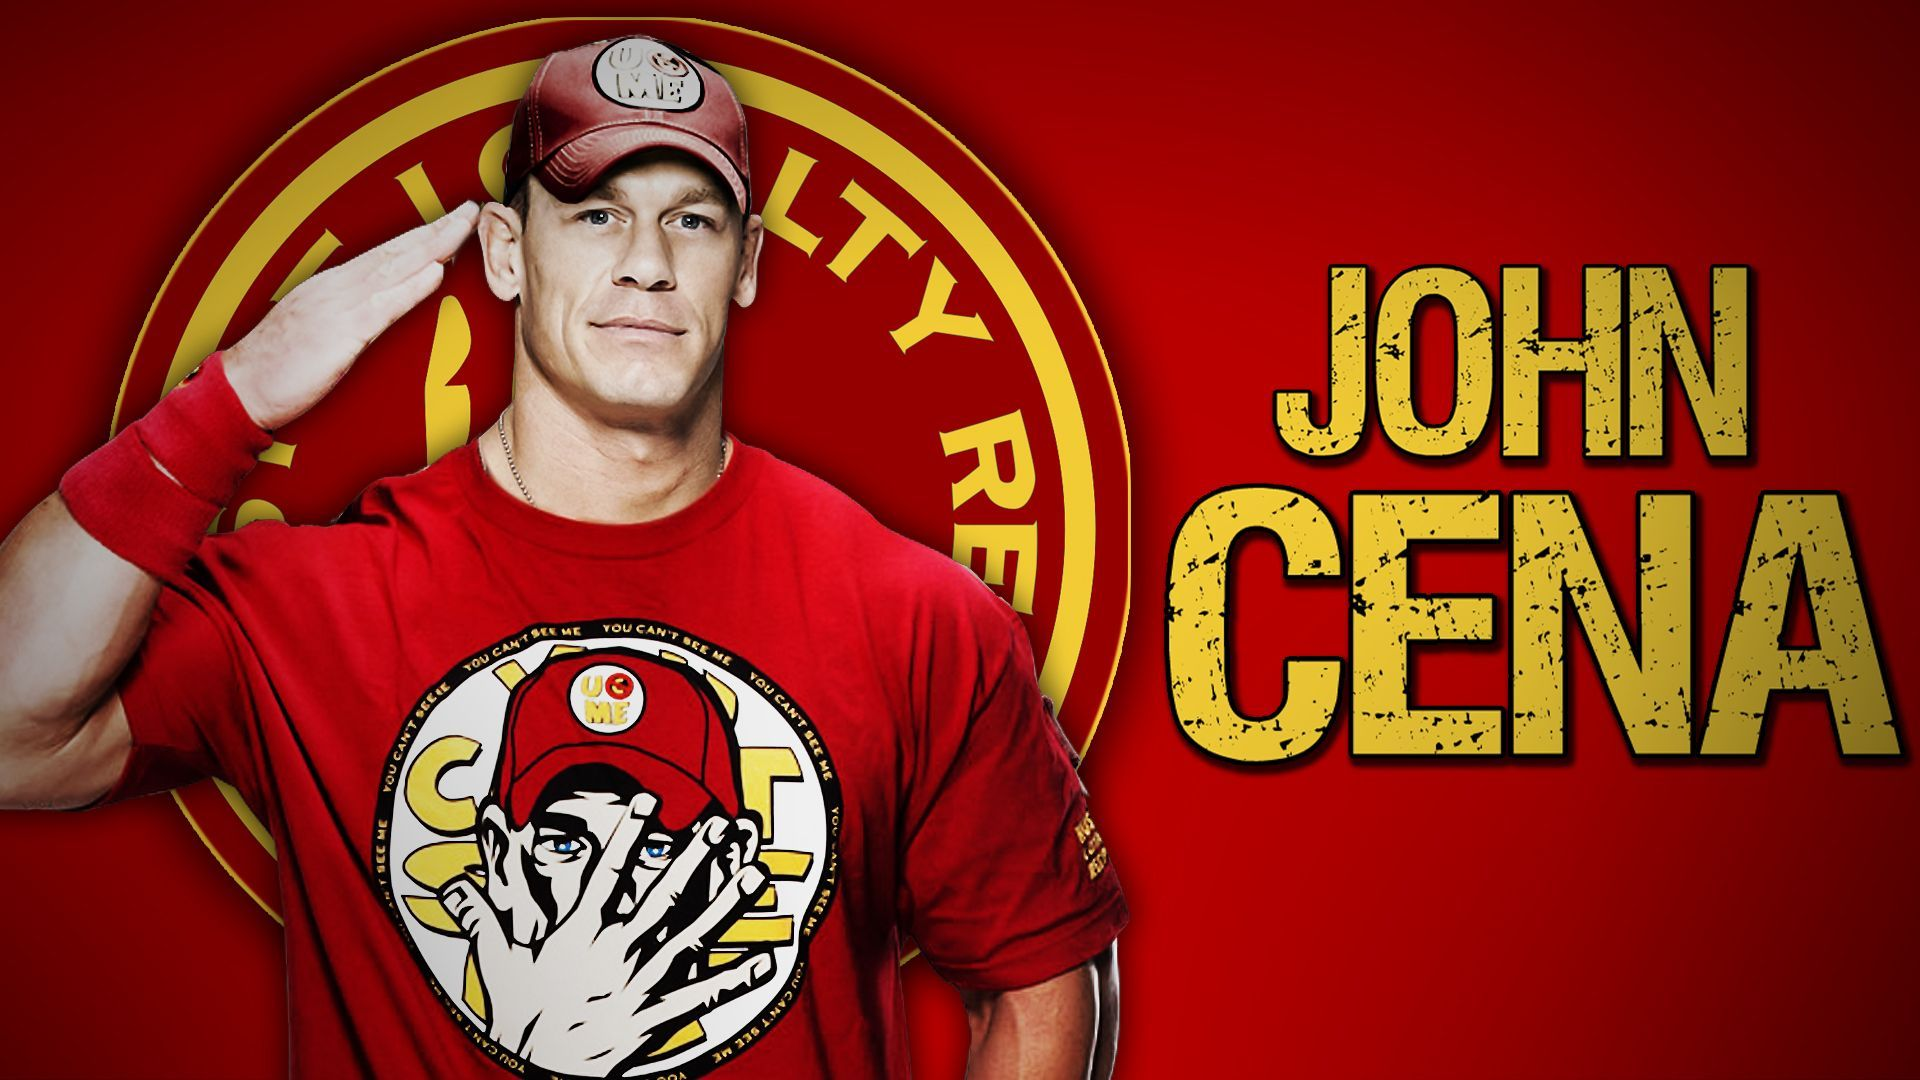 John Cena Wallpapers HD 2014